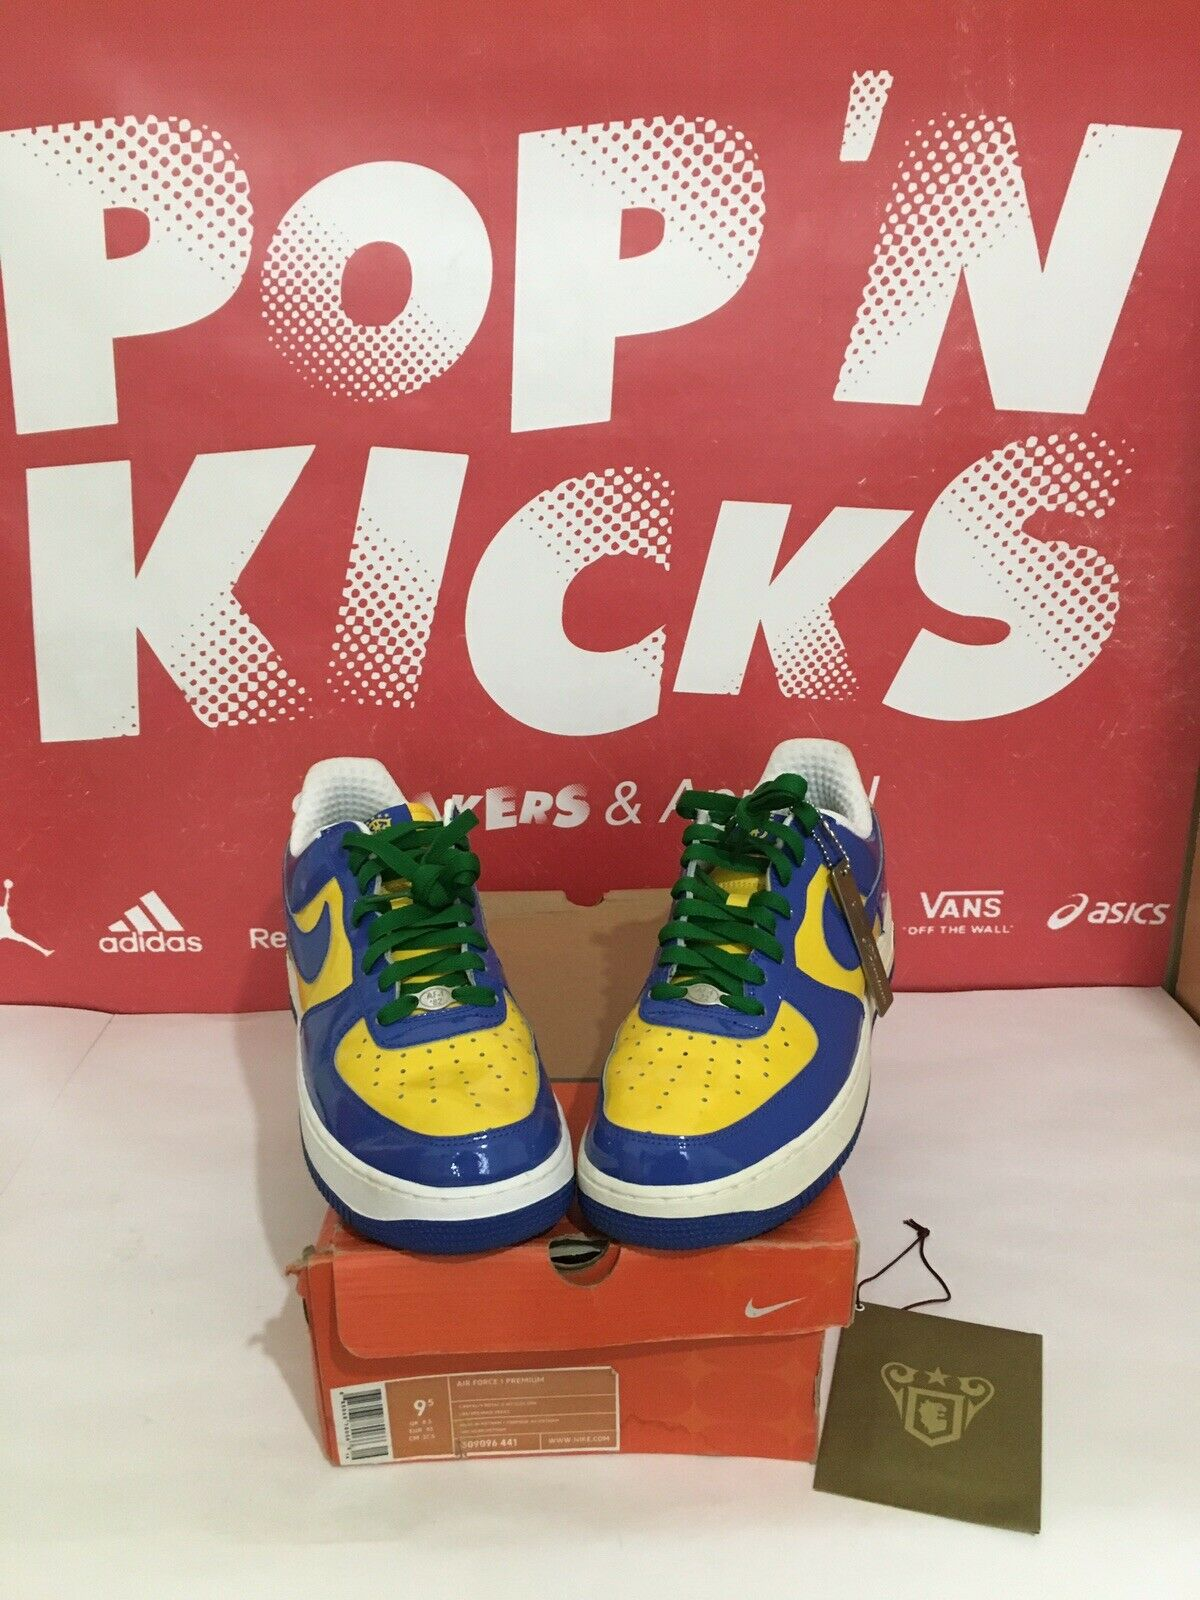 Nike Air Force 1 Brazil World Cup Royal green yellow